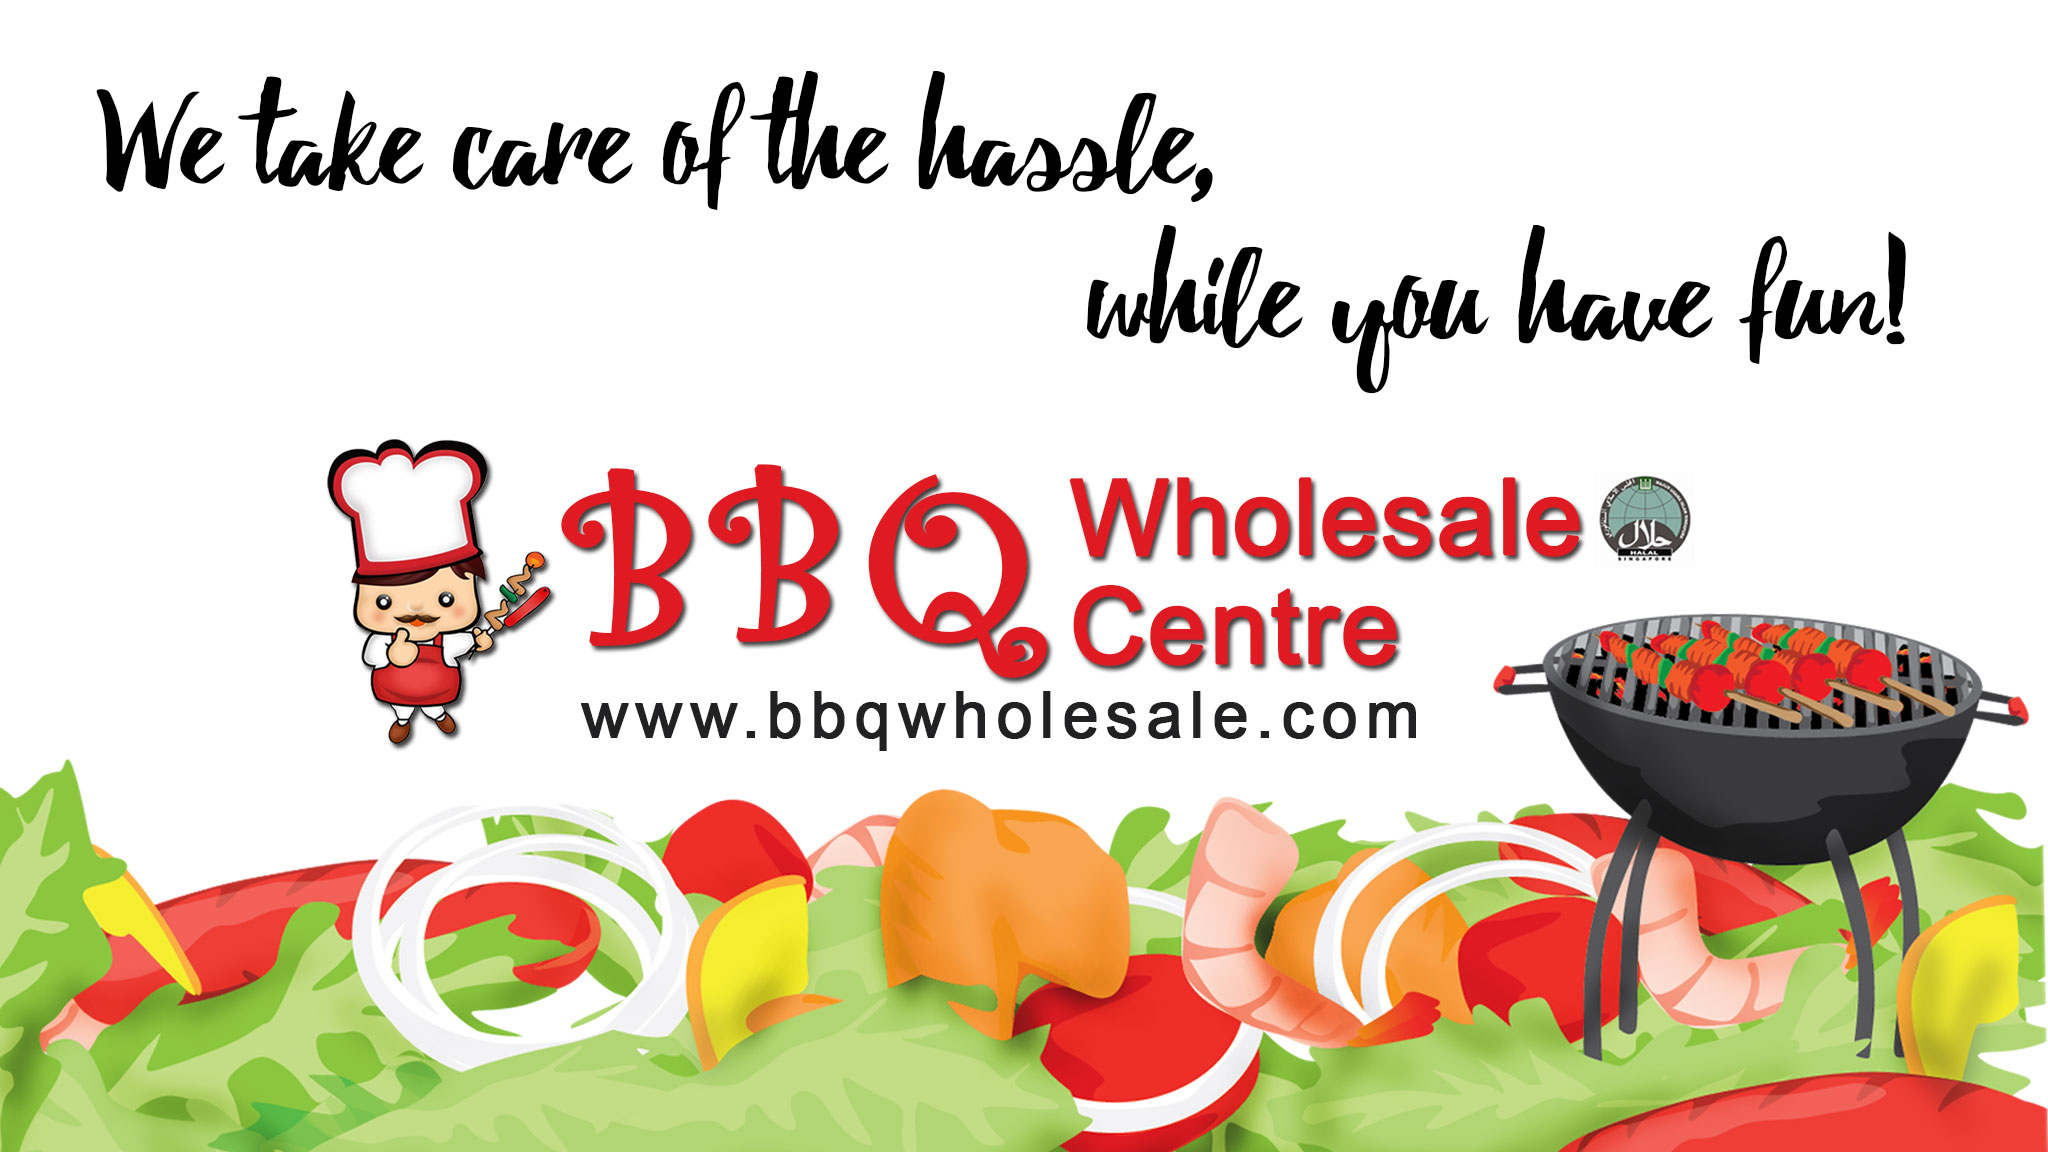 Bbq wholesale centre